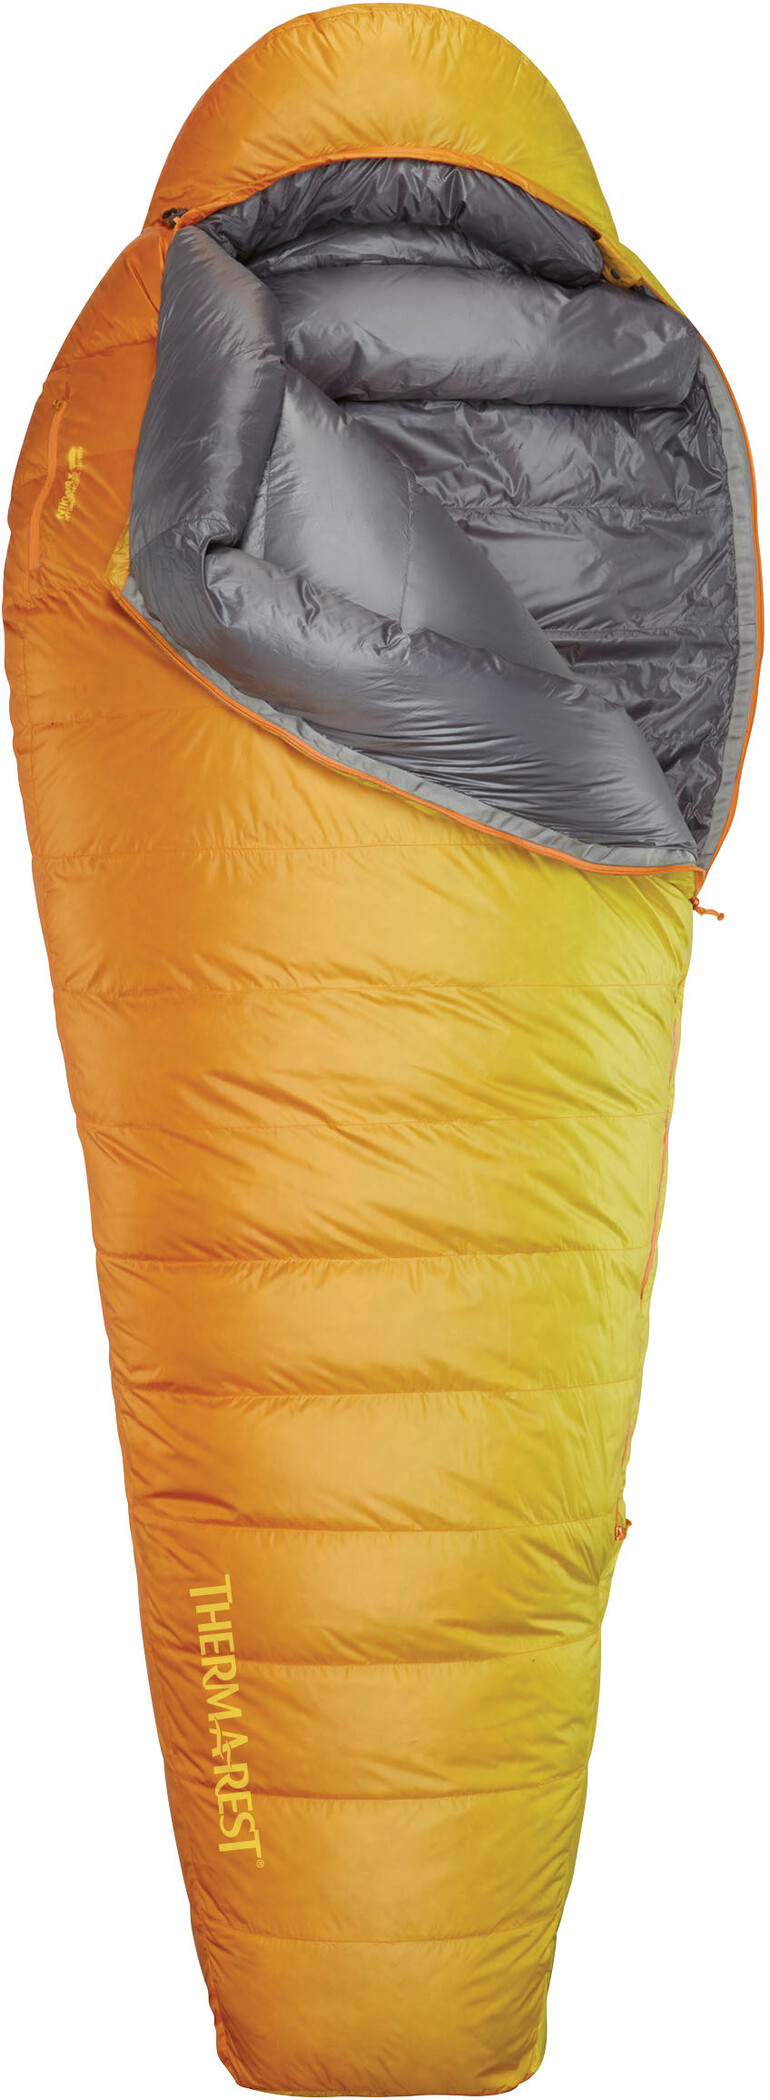 Therm-a-Rest Oberon 0 Sovepose small, orange (2019) | Misc. Transportation and Storage